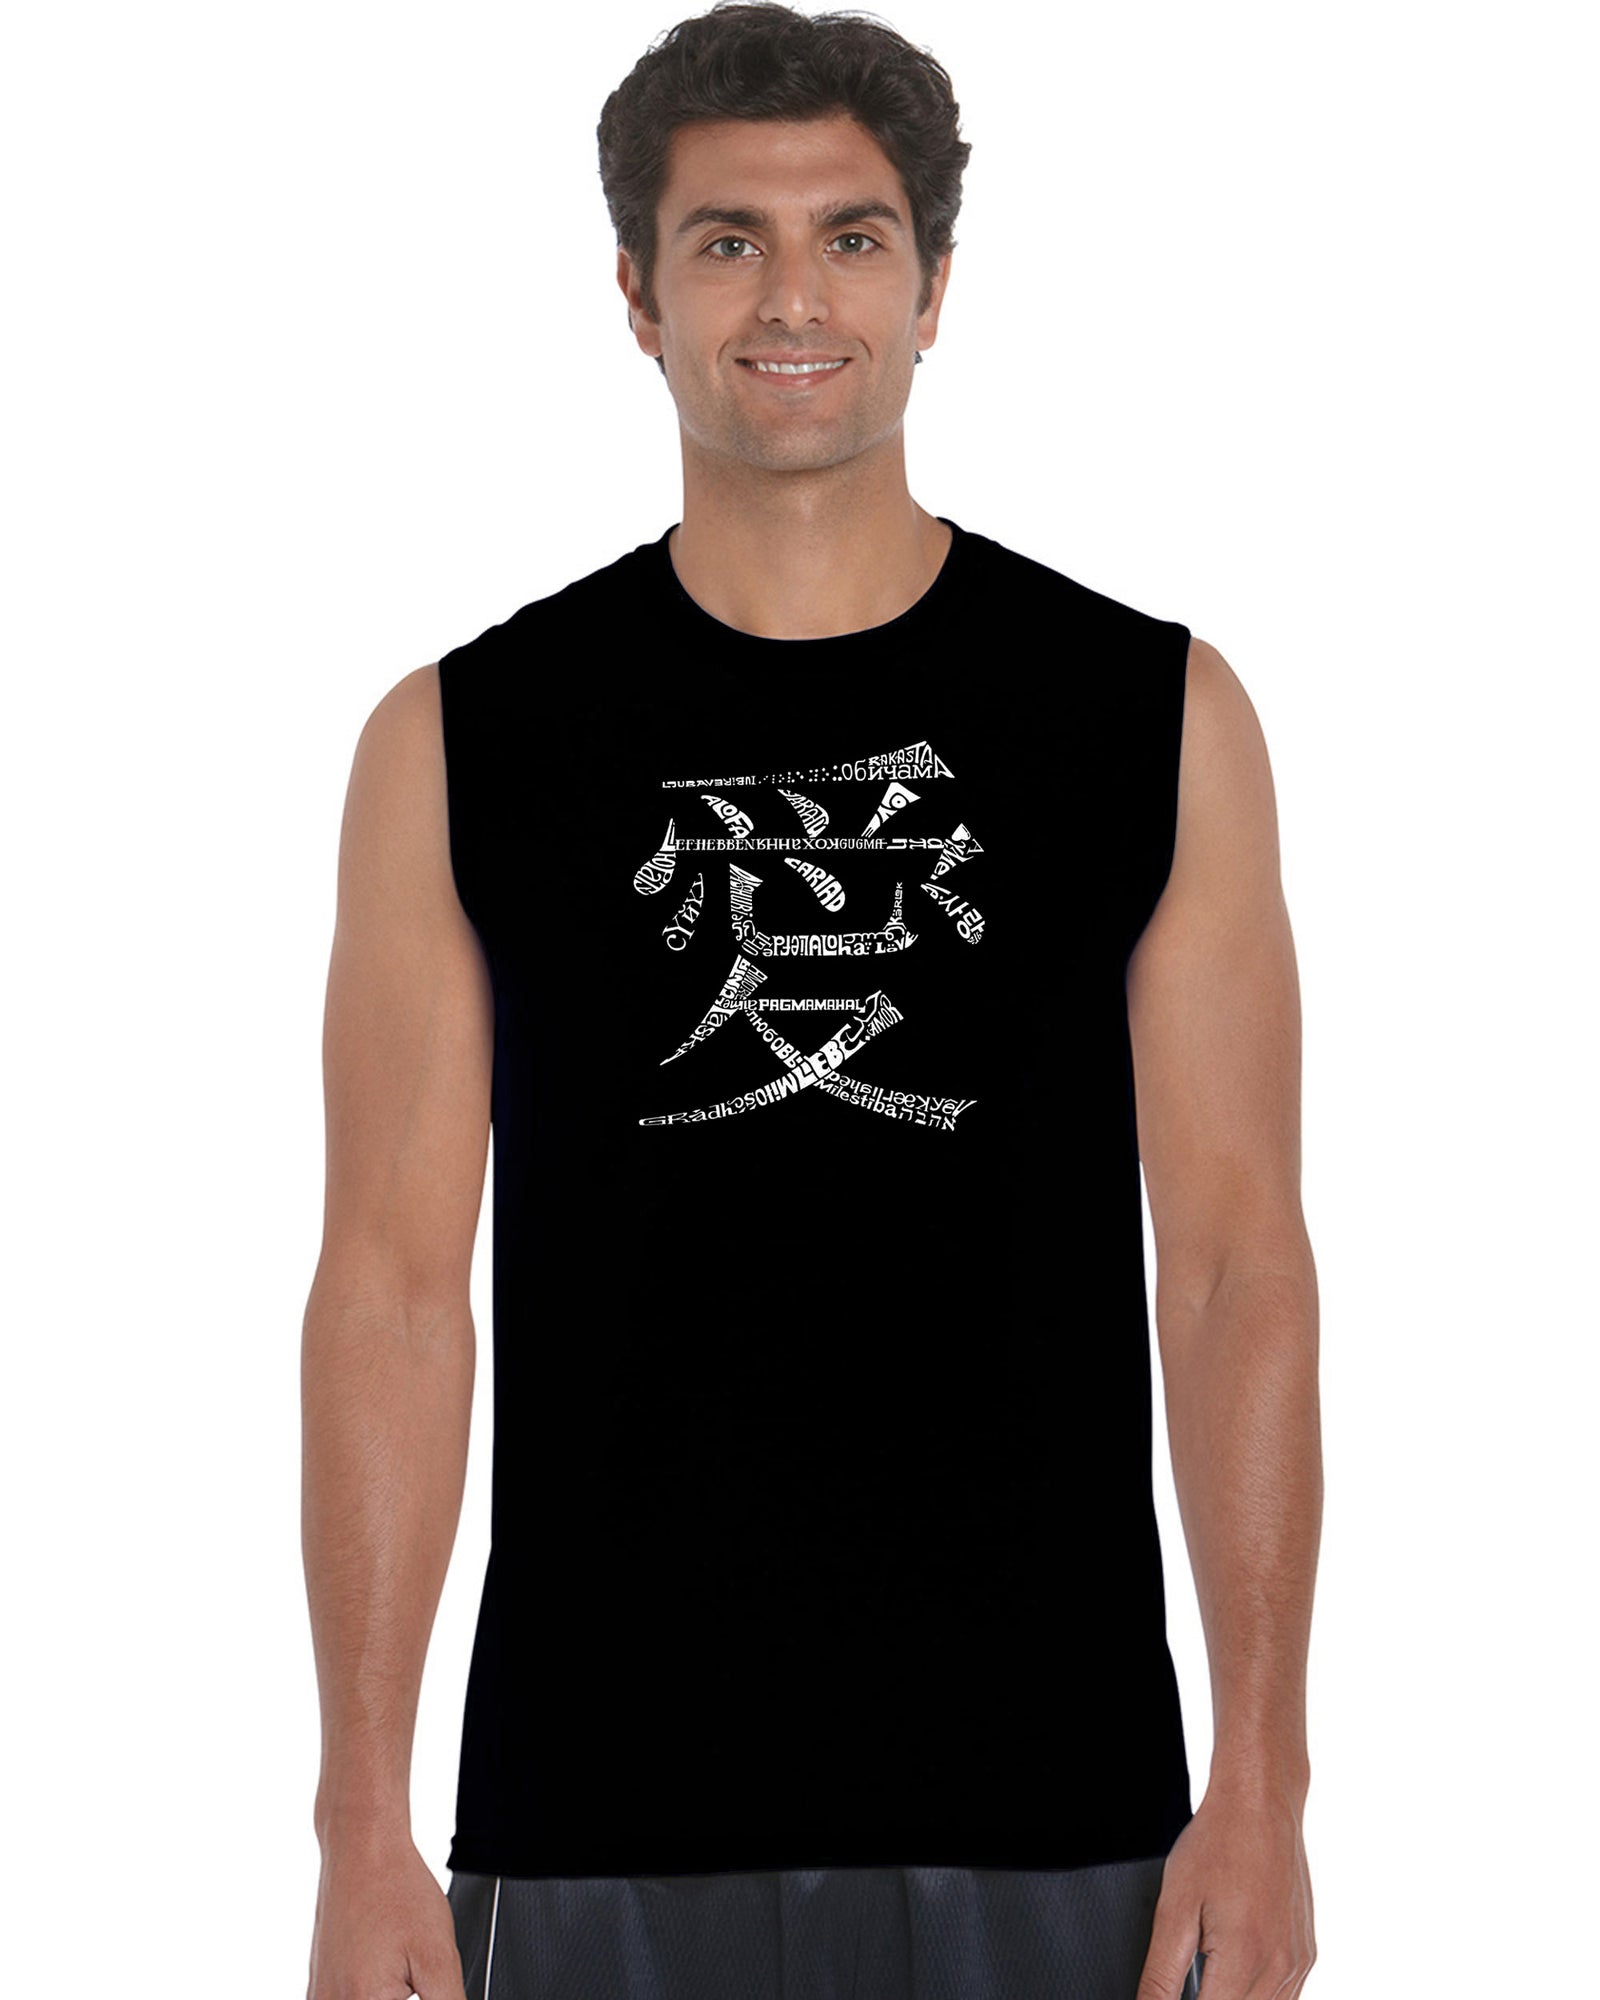 Men's Sleeveless T-shirt - The Word Love in 44 Languages